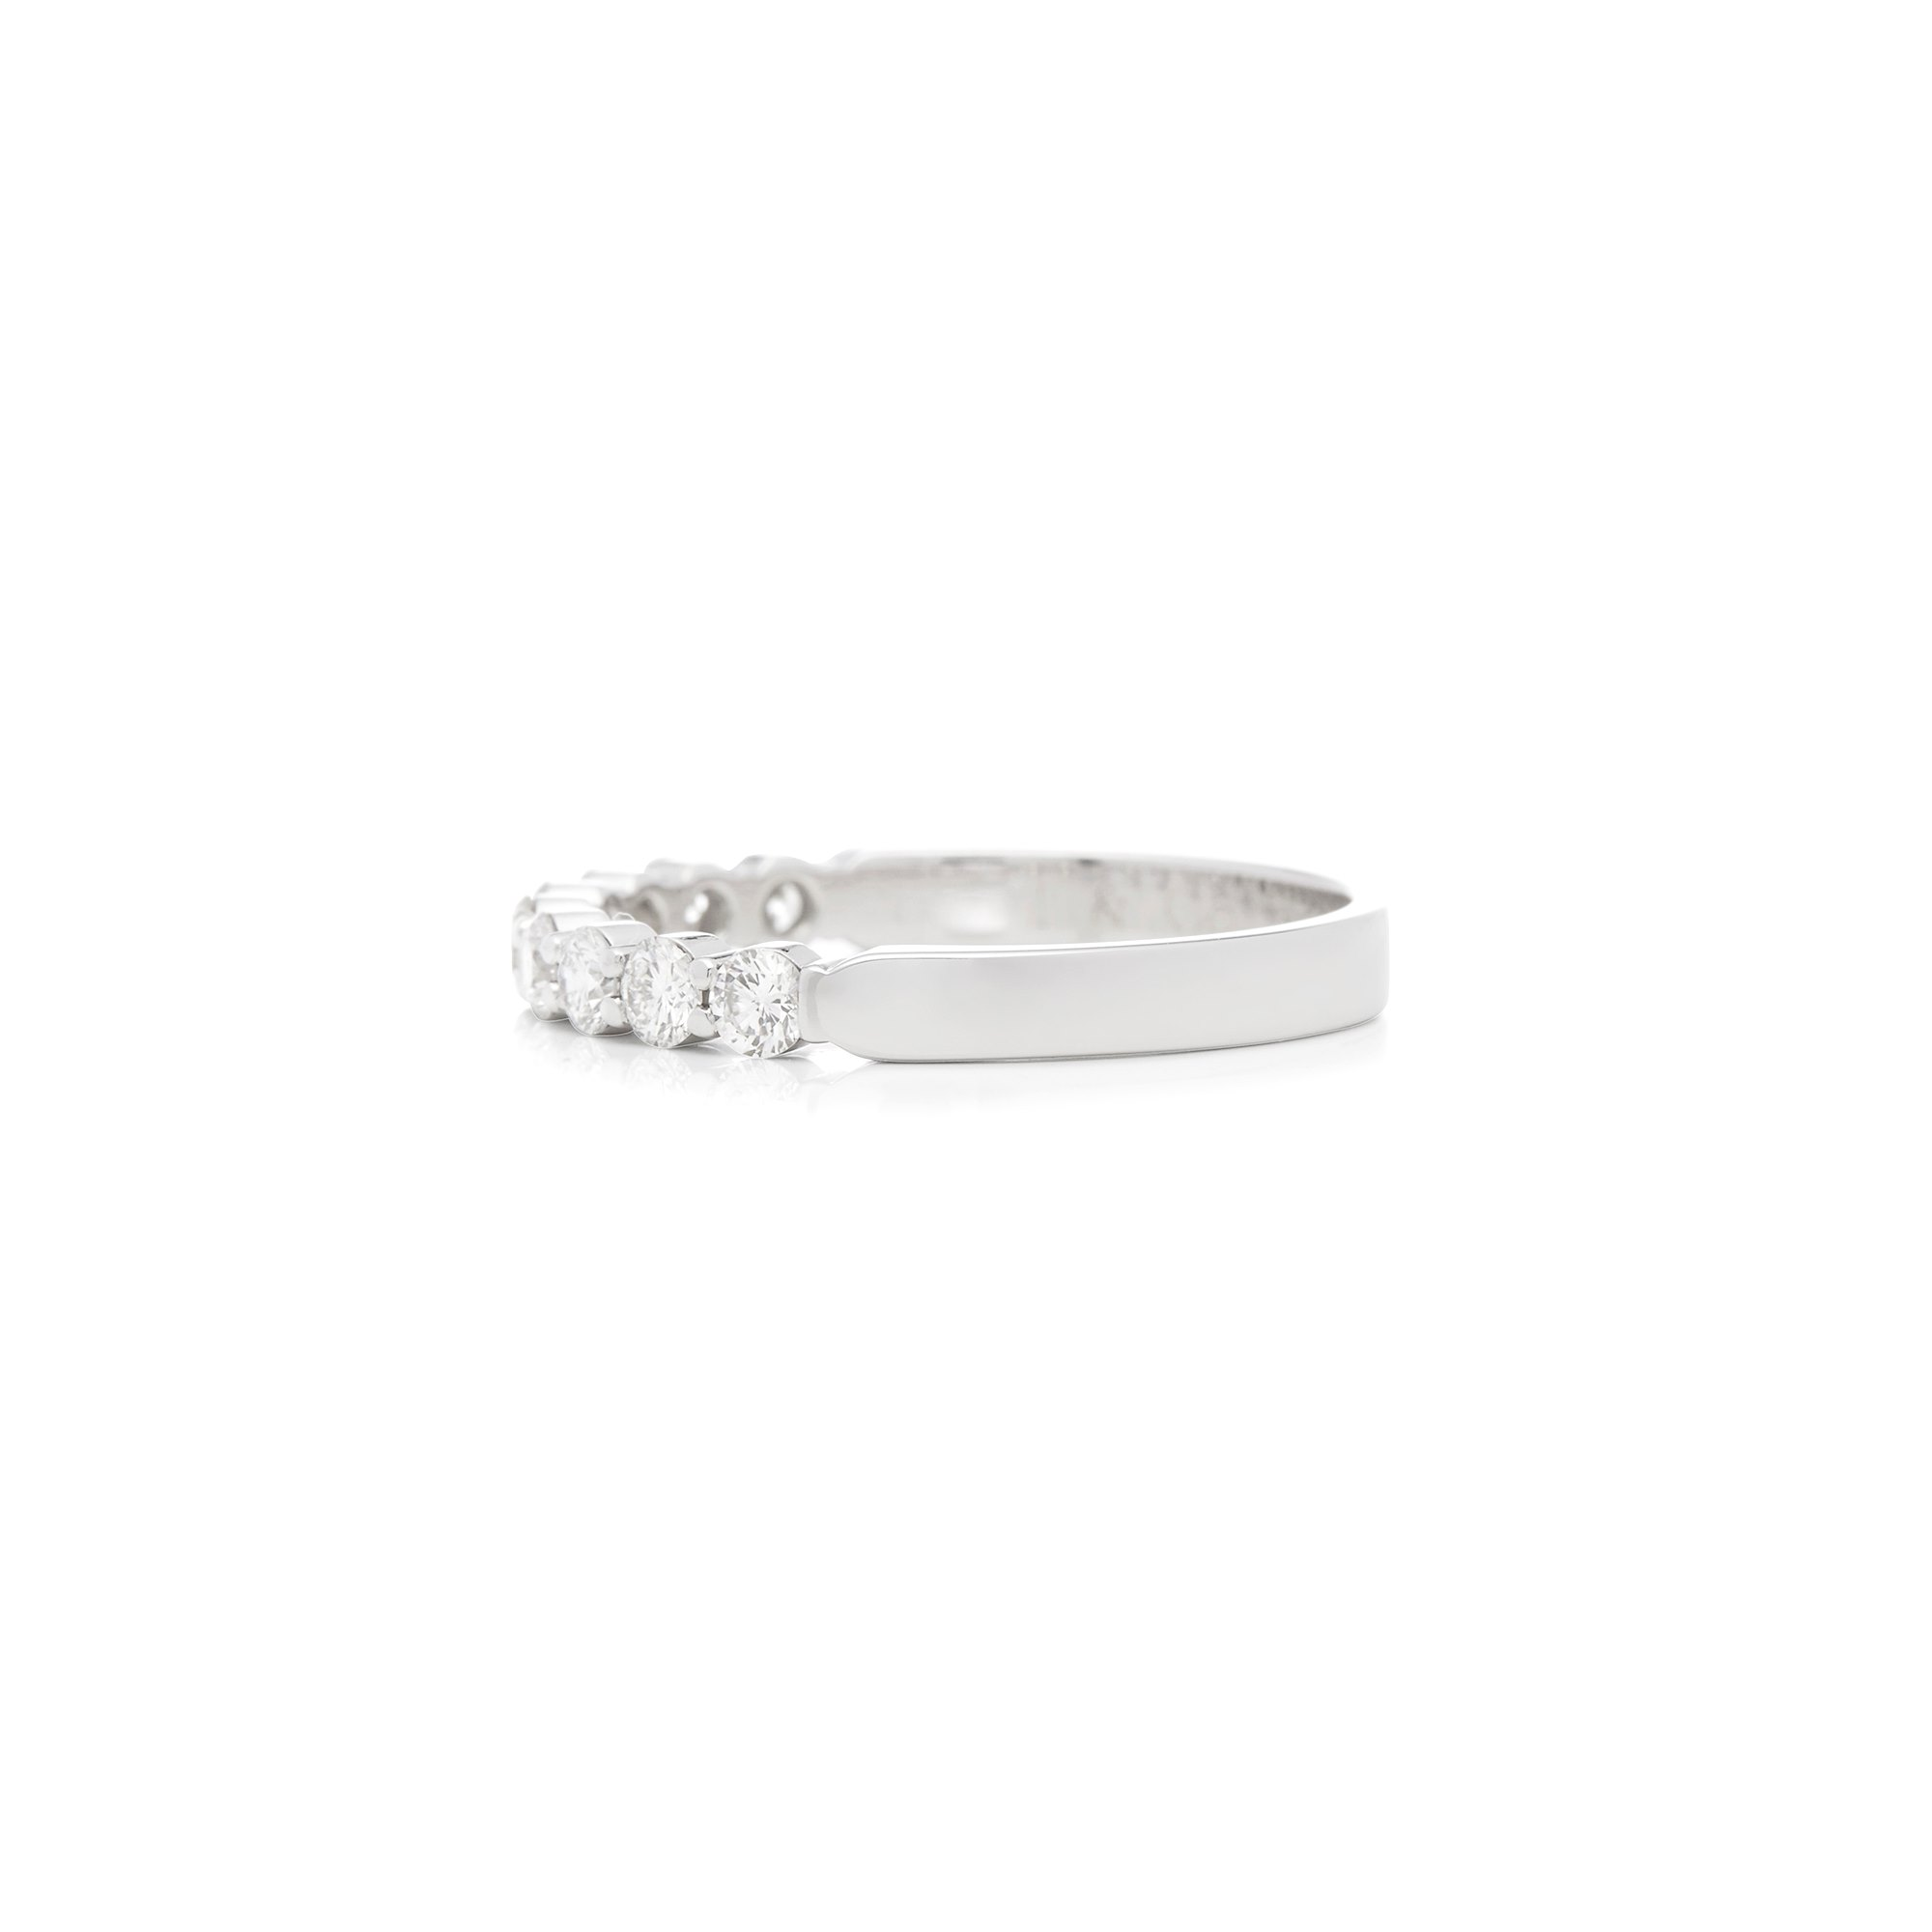 Tiffany & Co. 18k White Gold Embrace Ring